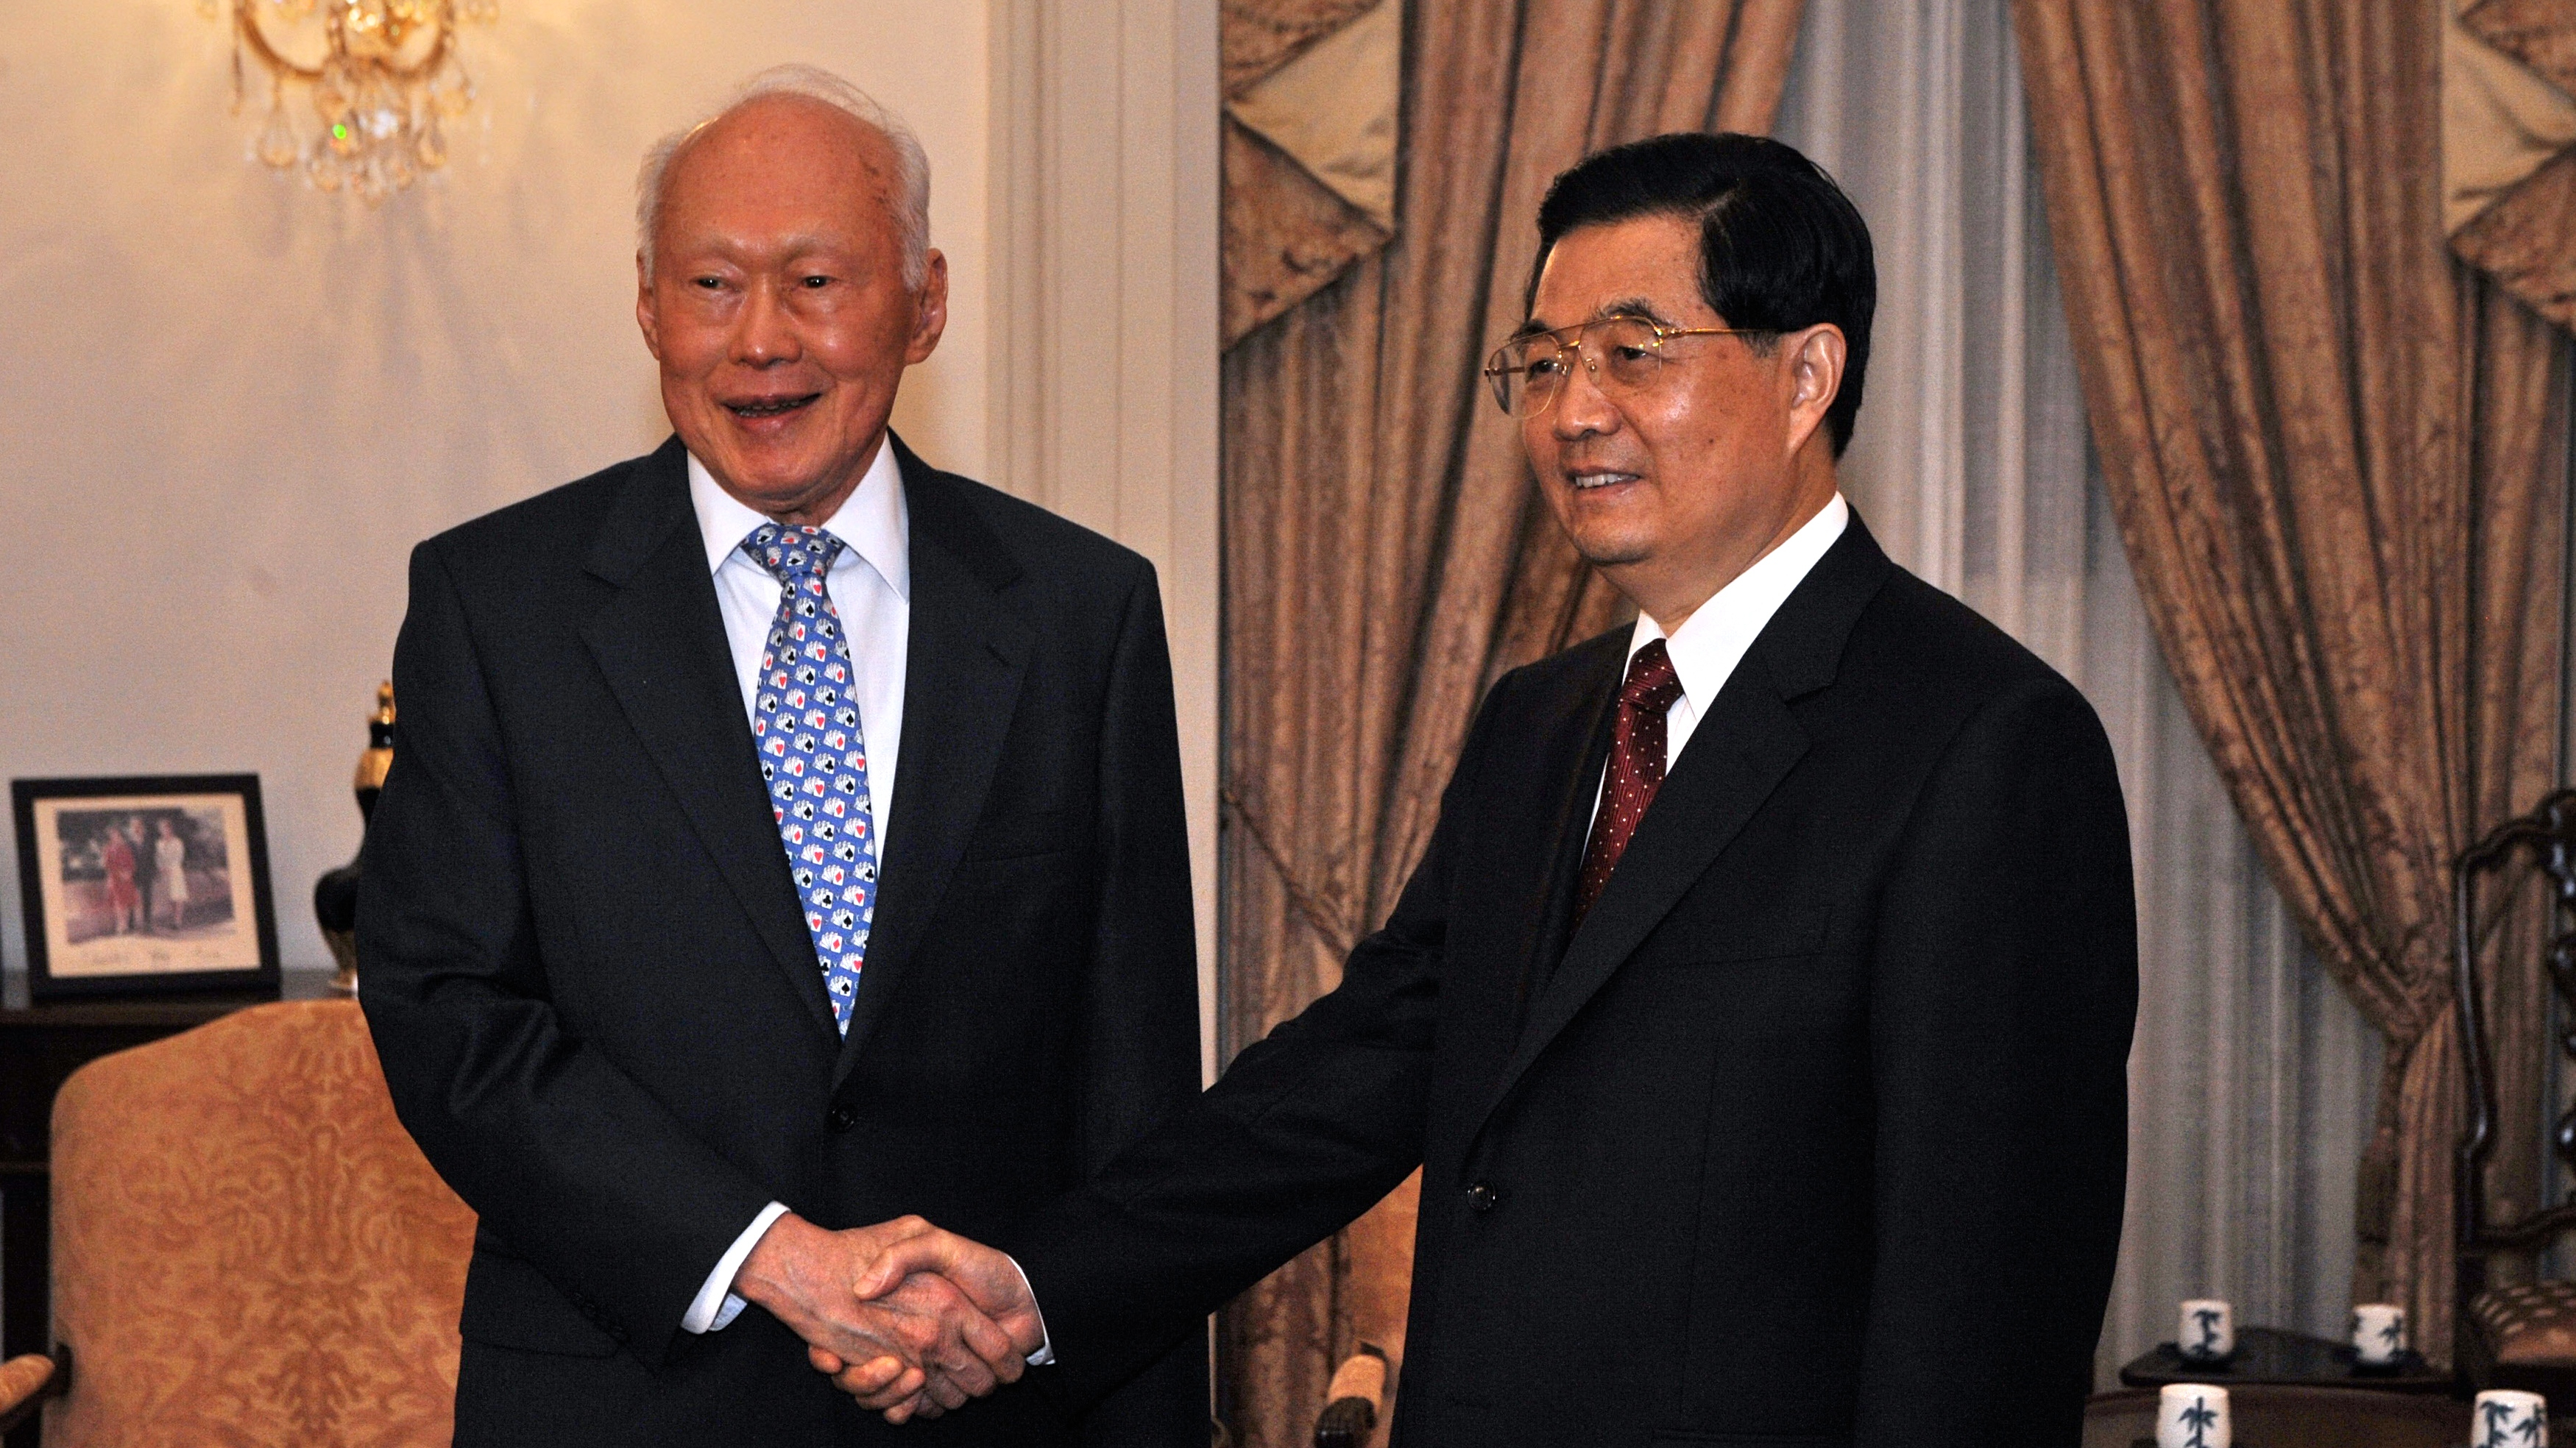 Lee Kuan Yew (L) shakes hands with China's President Hu Jintao (R) at the Istana presidential palace in Singapore on November 11, 2009.